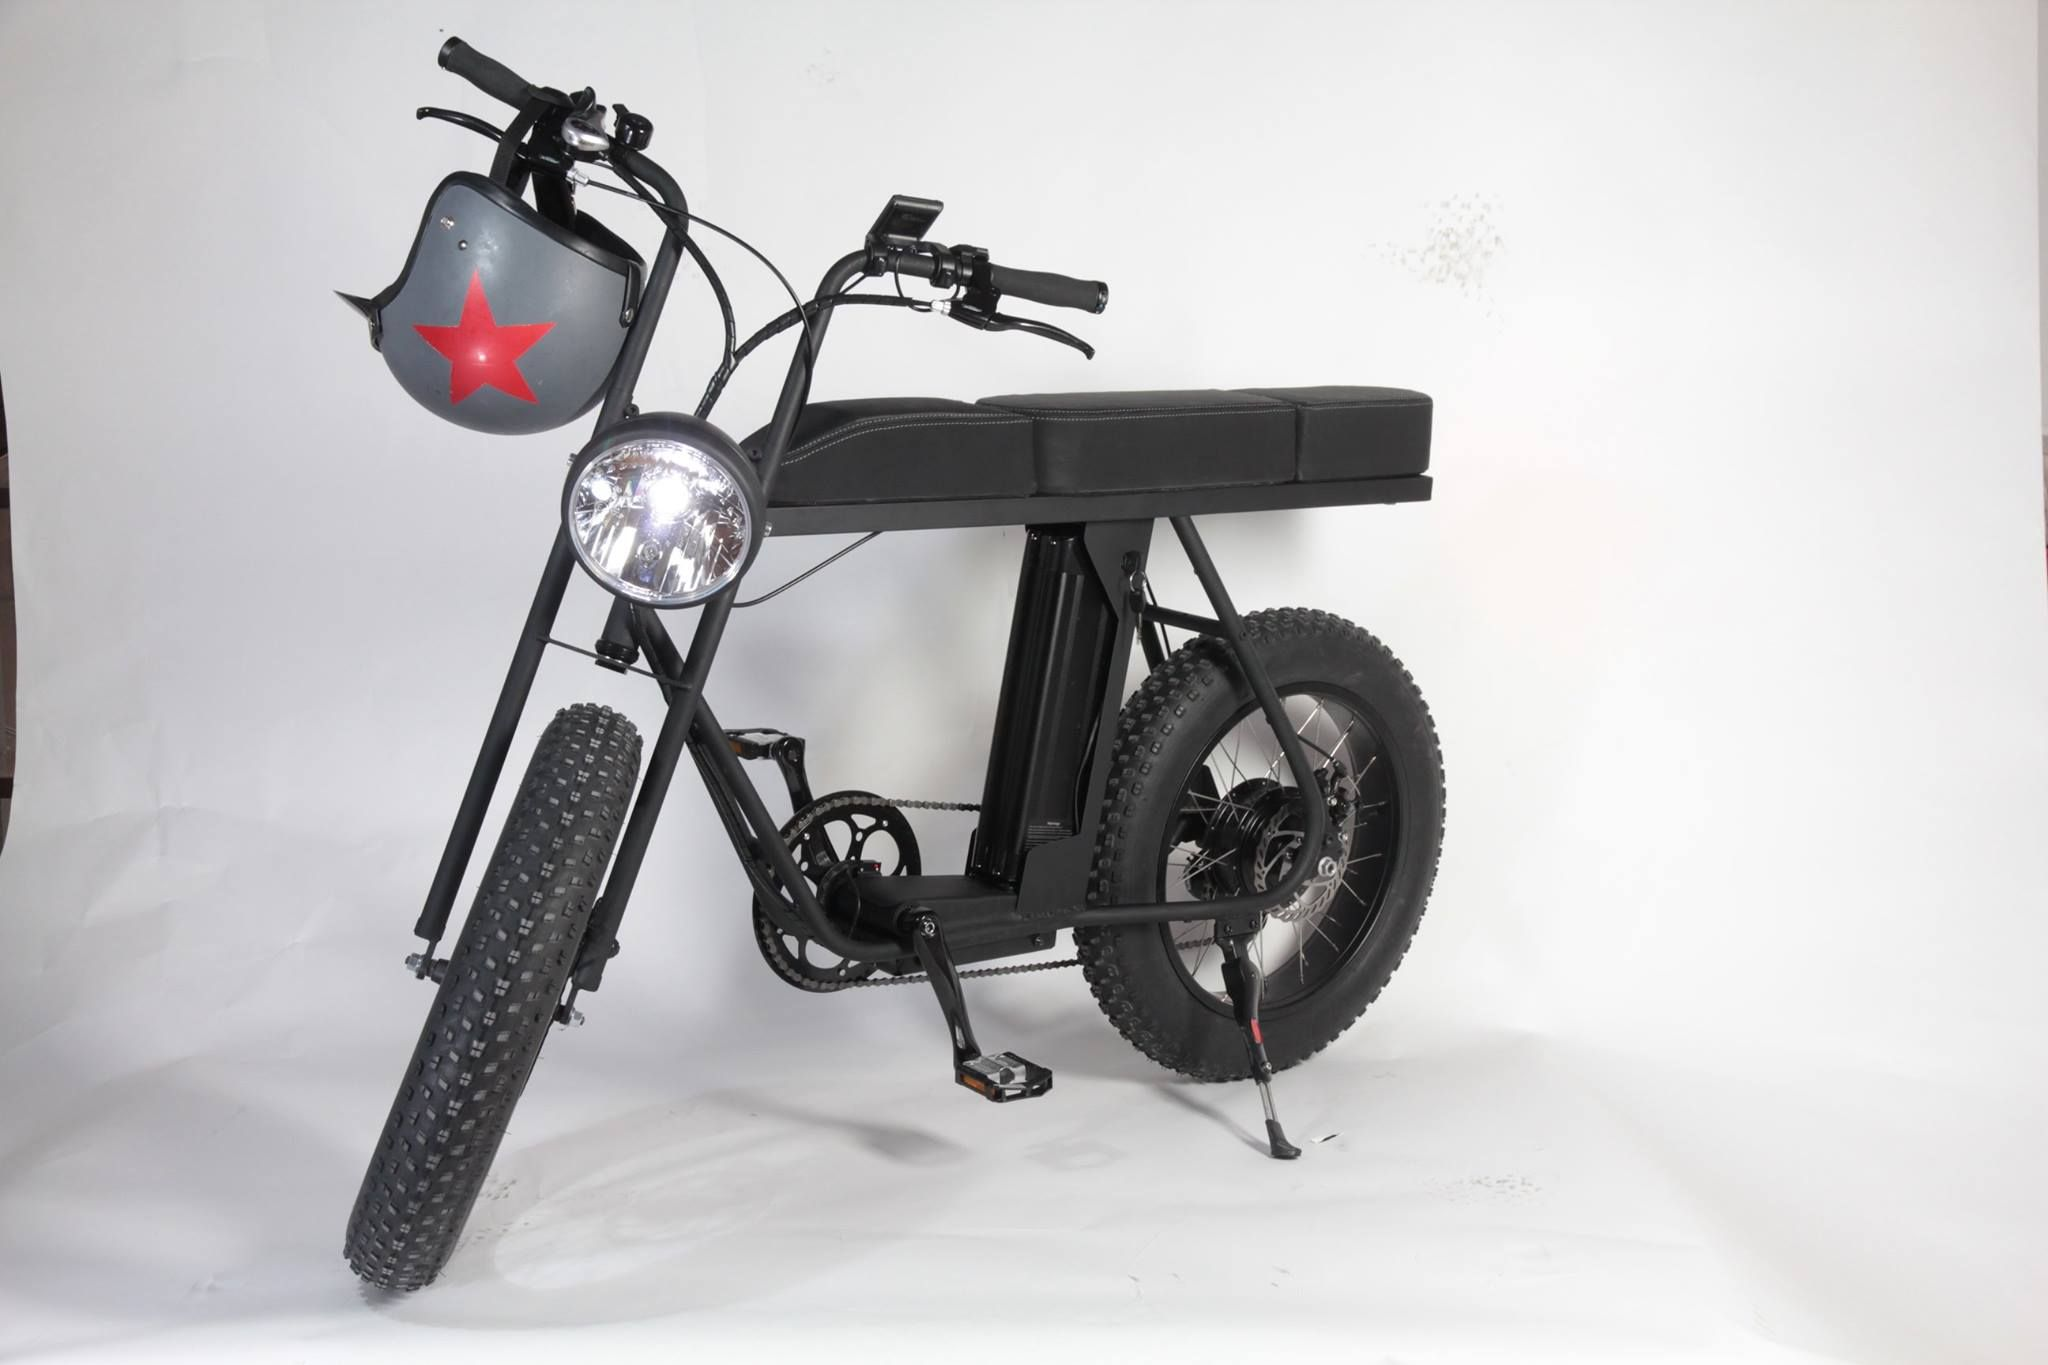 Best Of Moke The Coolest Urban Utility E Bike Ever